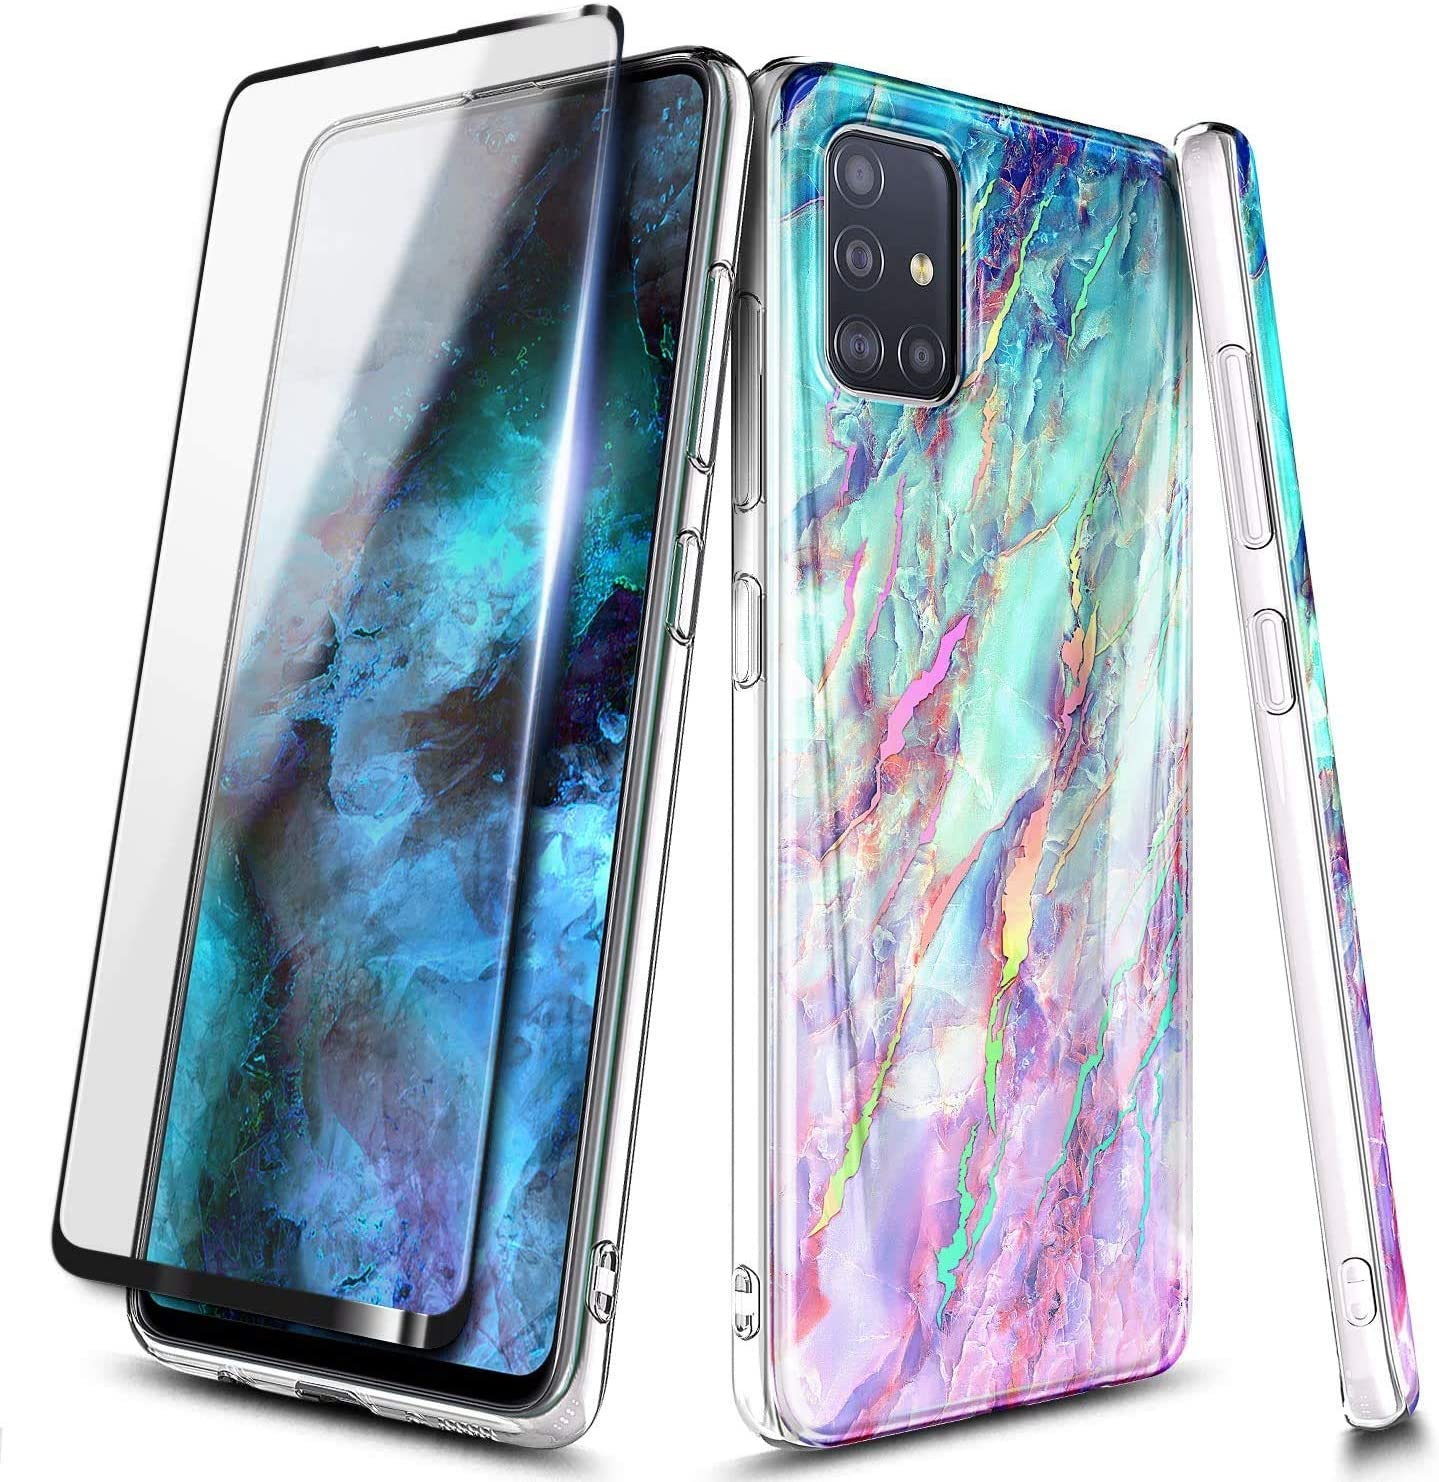 Amazon Com E Began Case For Samsung Galaxy A71 5g Not Fit A71 5g Uw Verizon With Tempered Glass Screen Protector Full Coverage Ultra Slim Thin Glossy Stylish Protective Marble Design Cover Case Nova